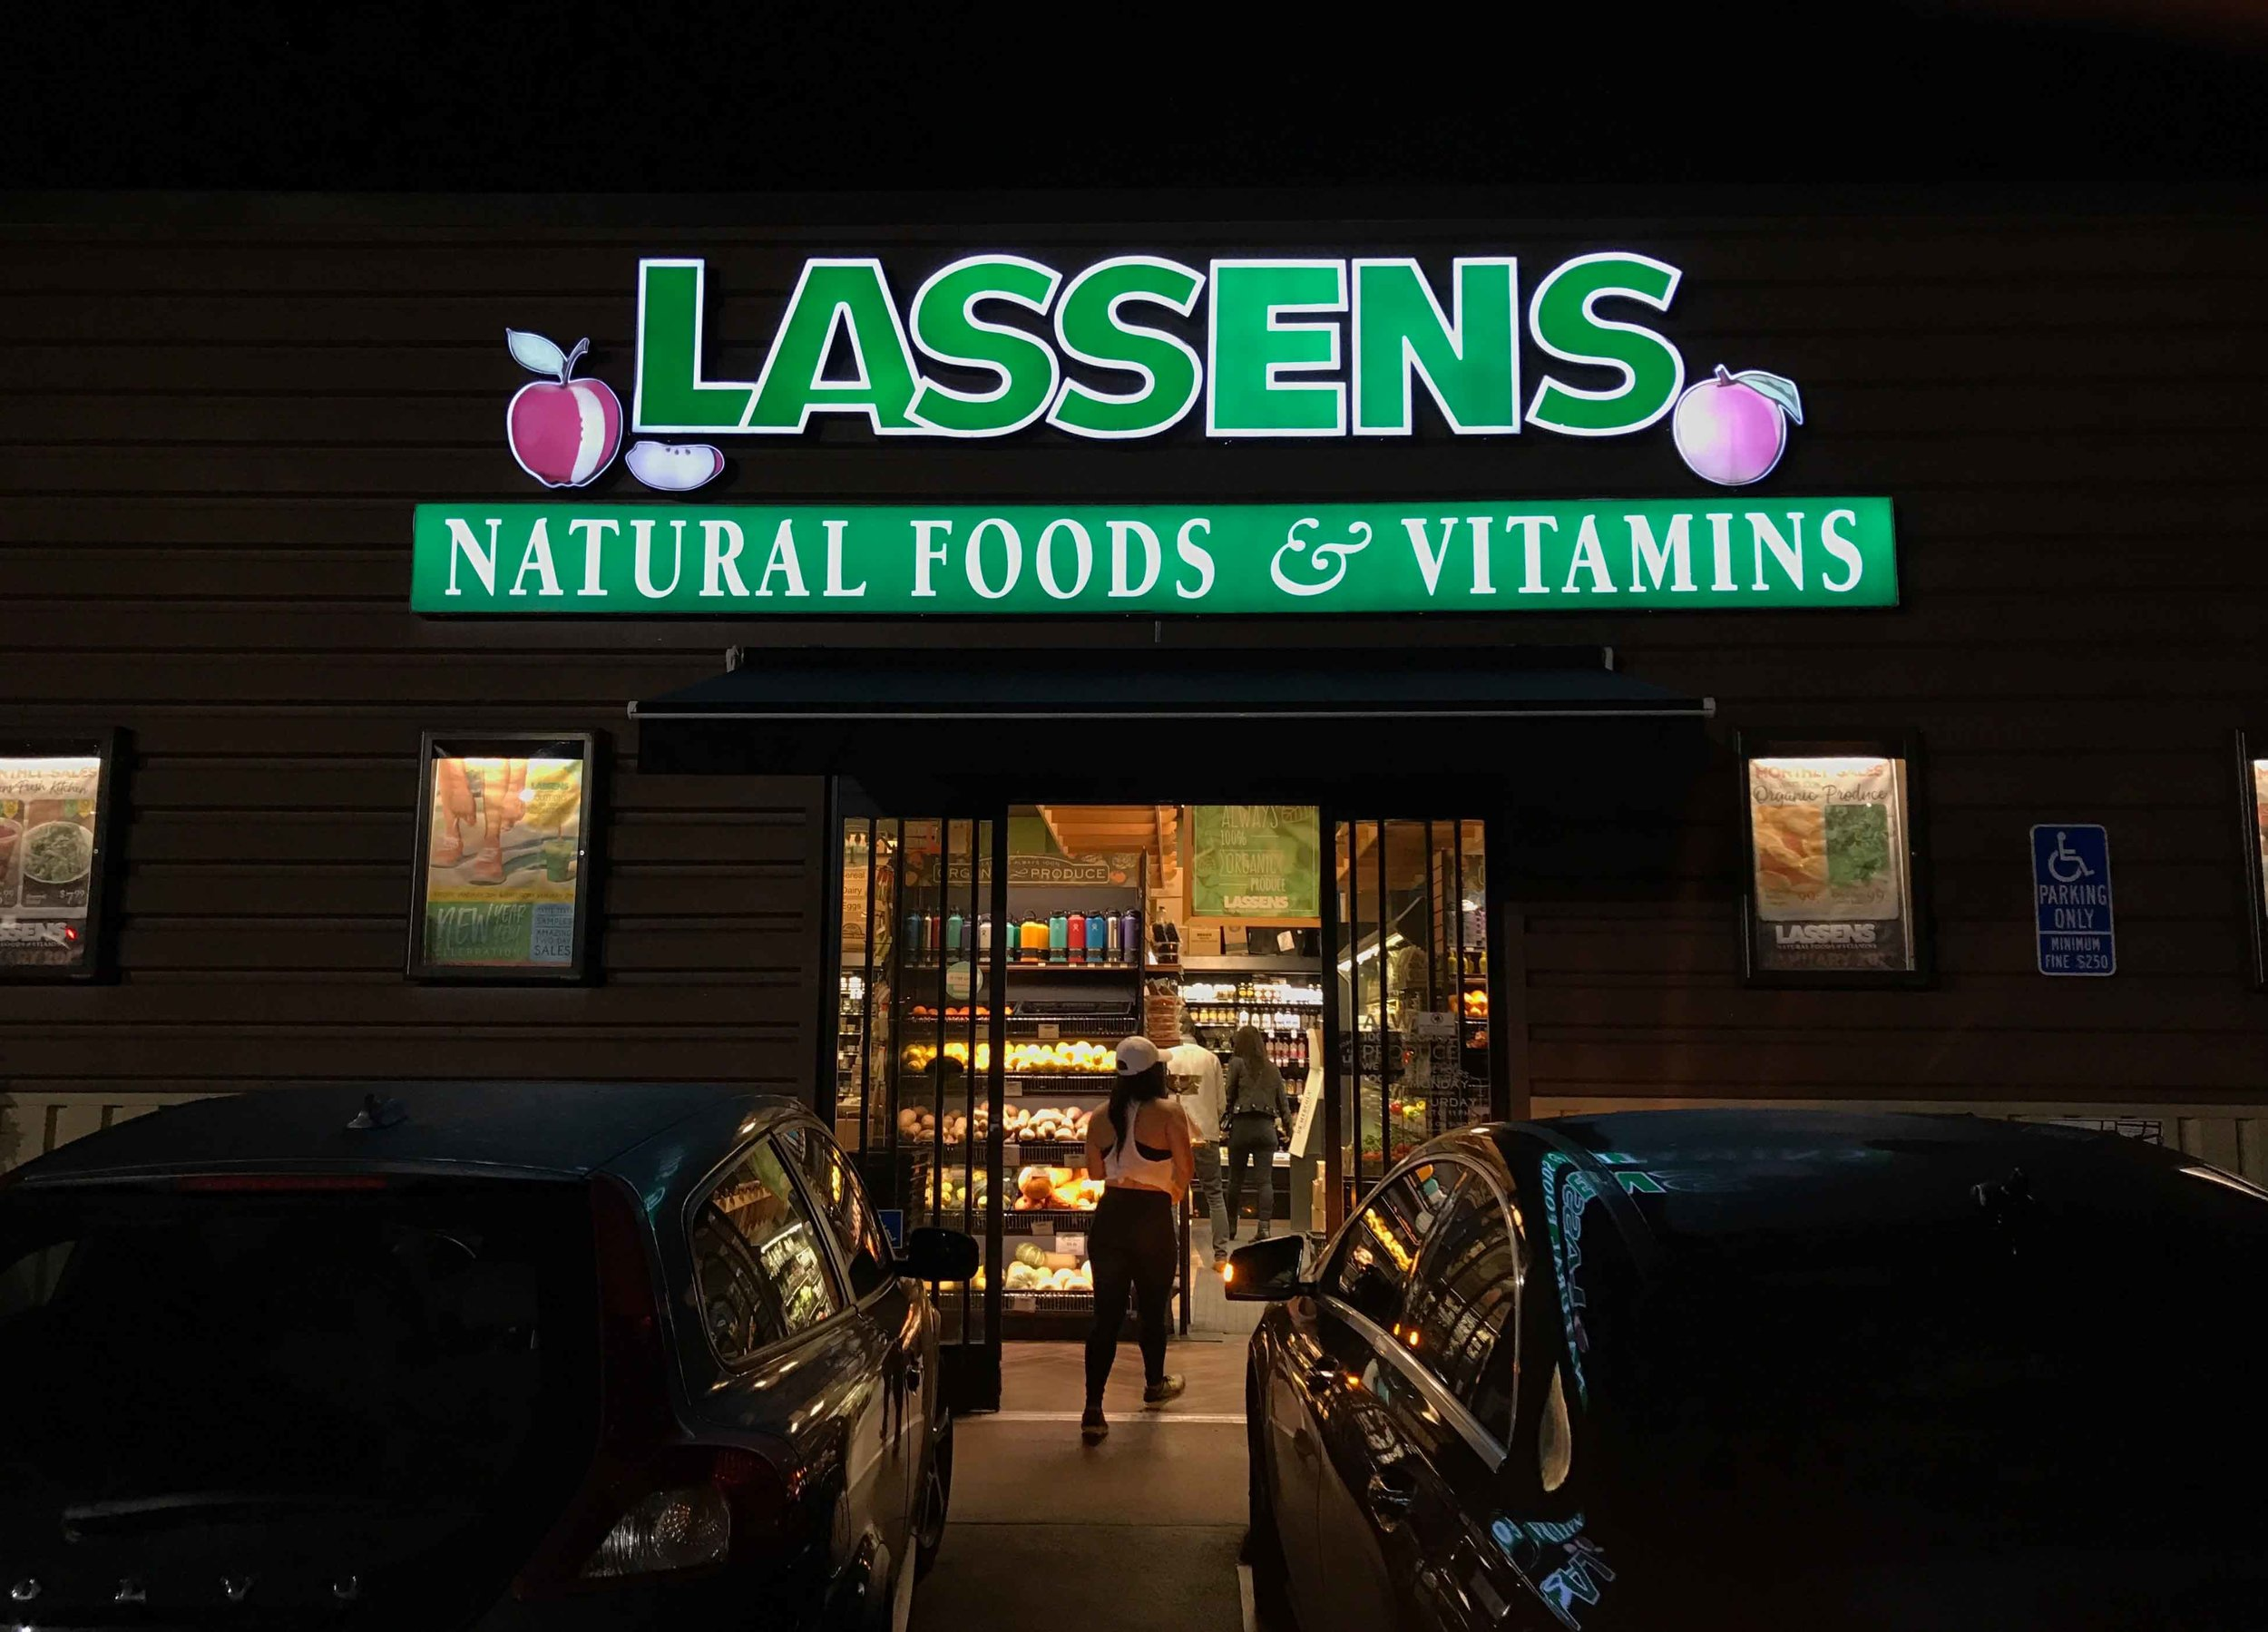 Lassens, natural food and vitamins, Los Angeles, USA. Image©thingstodot.com